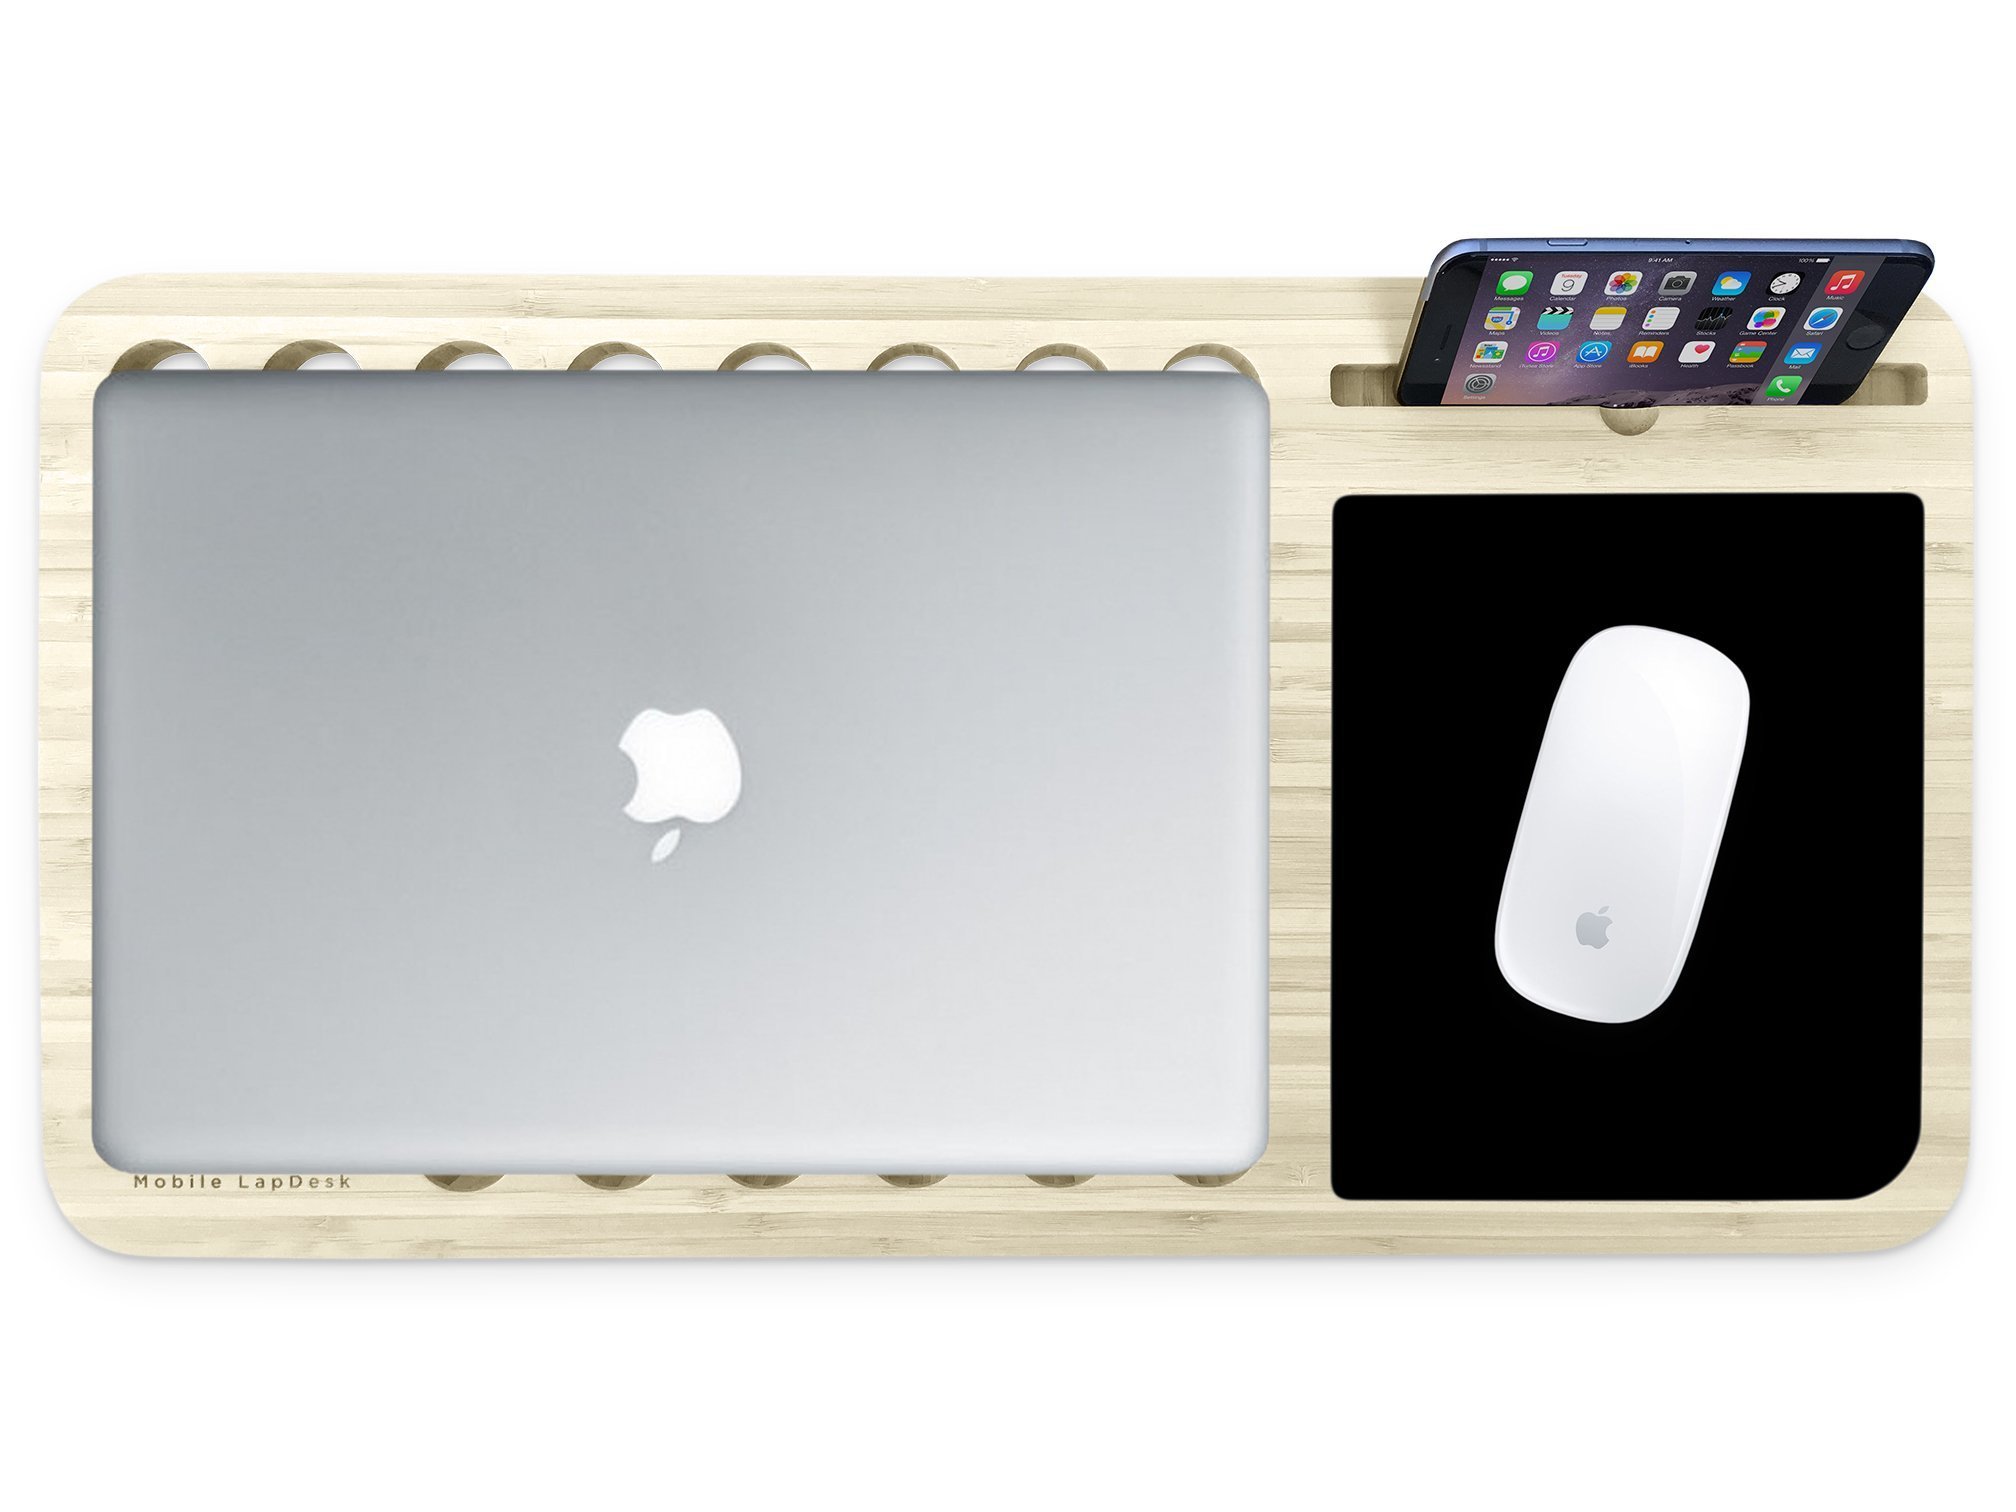 Slate 2.0 Mobile LapDesk : Essential Laptop Accessory for Students, Professionals, Designers, and Gamers : Built in the USA by iSkelter